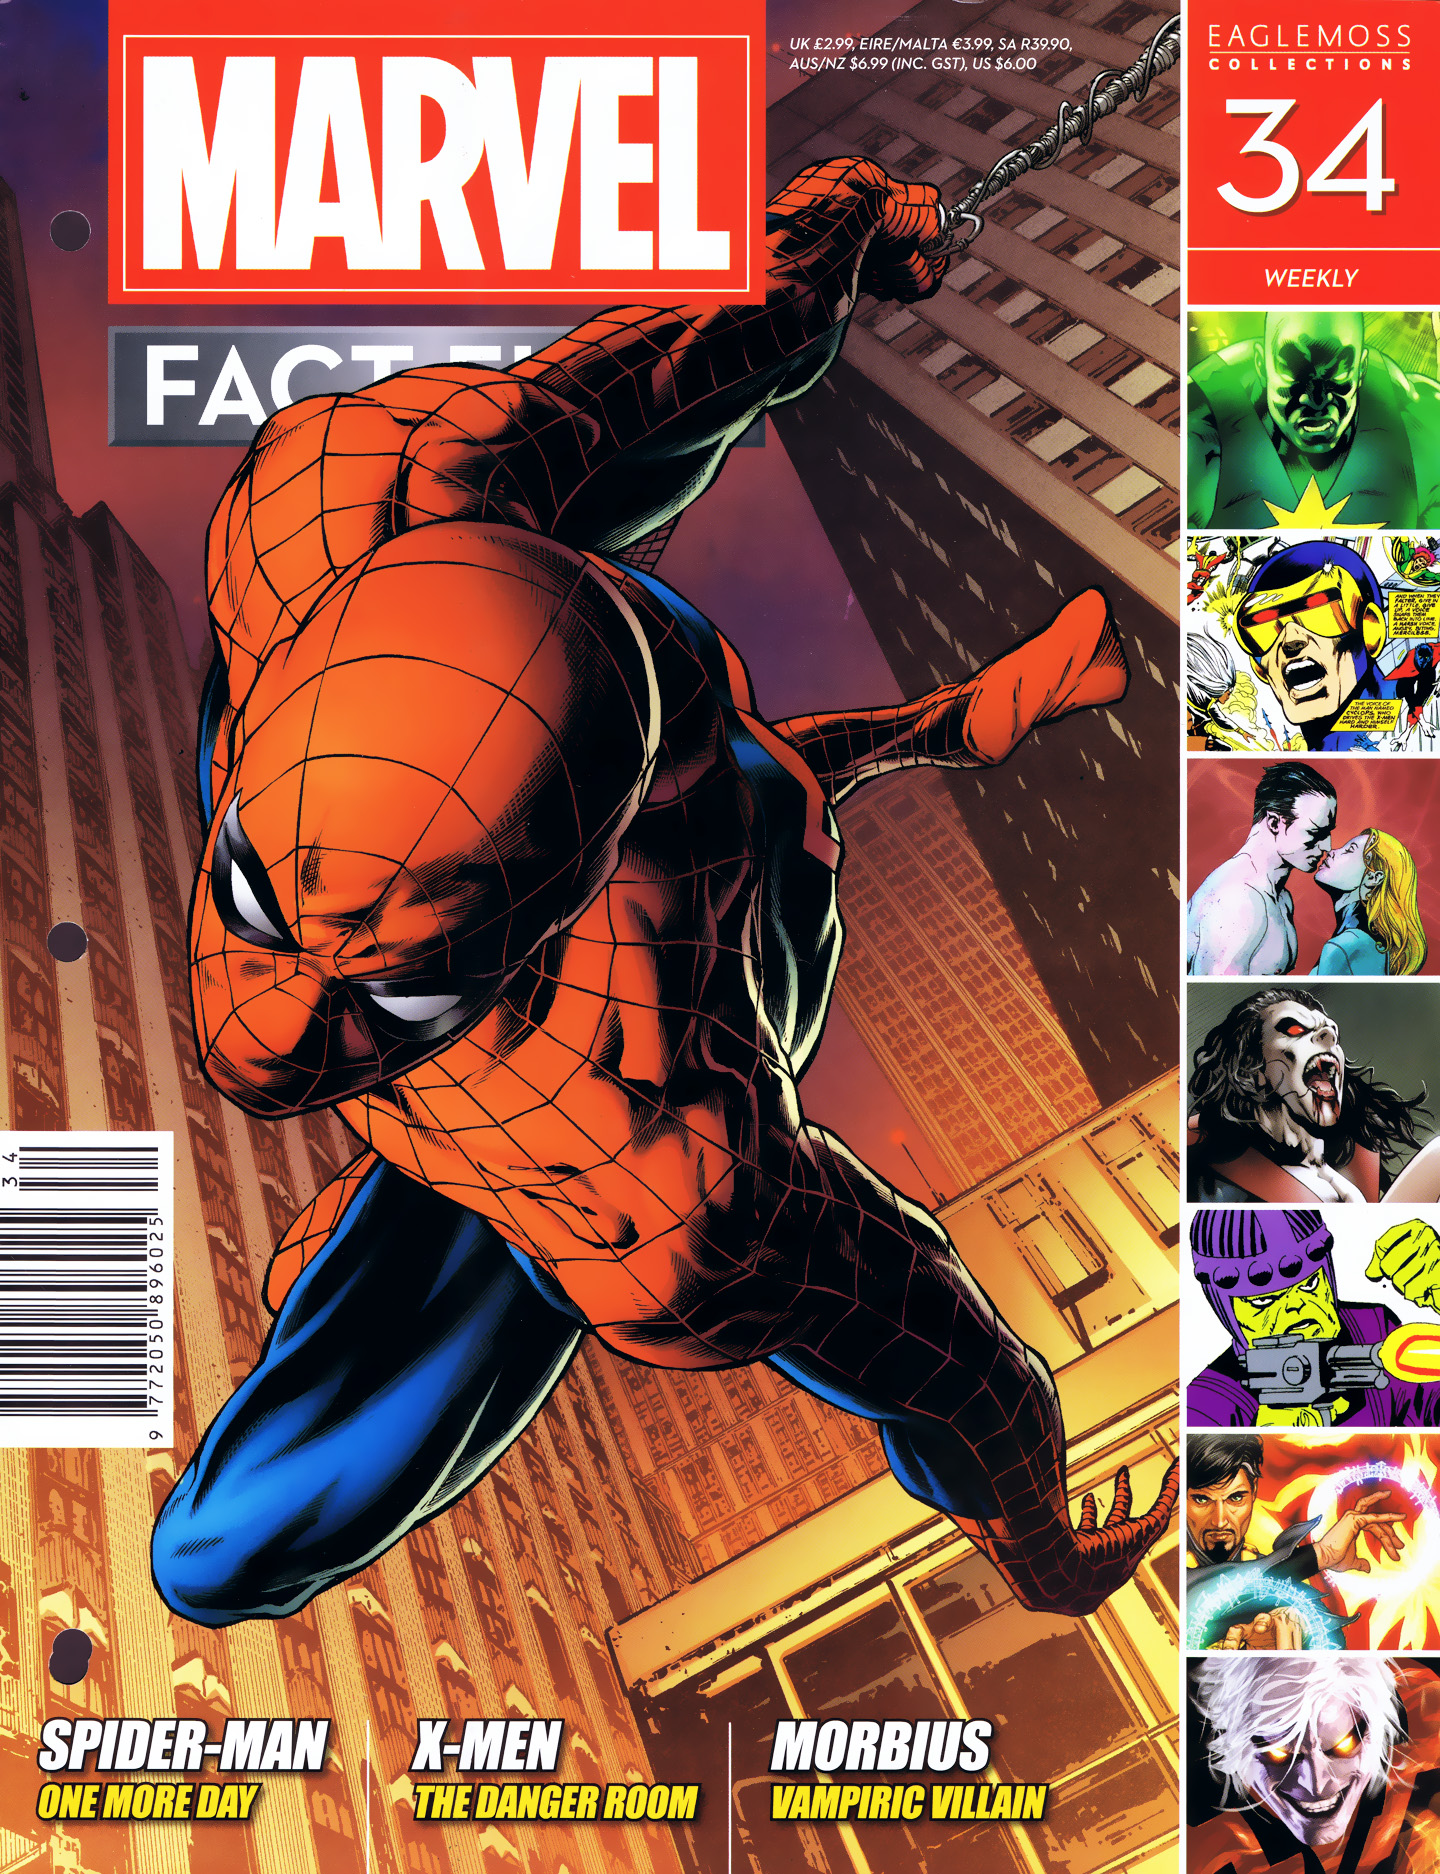 Marvel Fact Files 34 Page 1